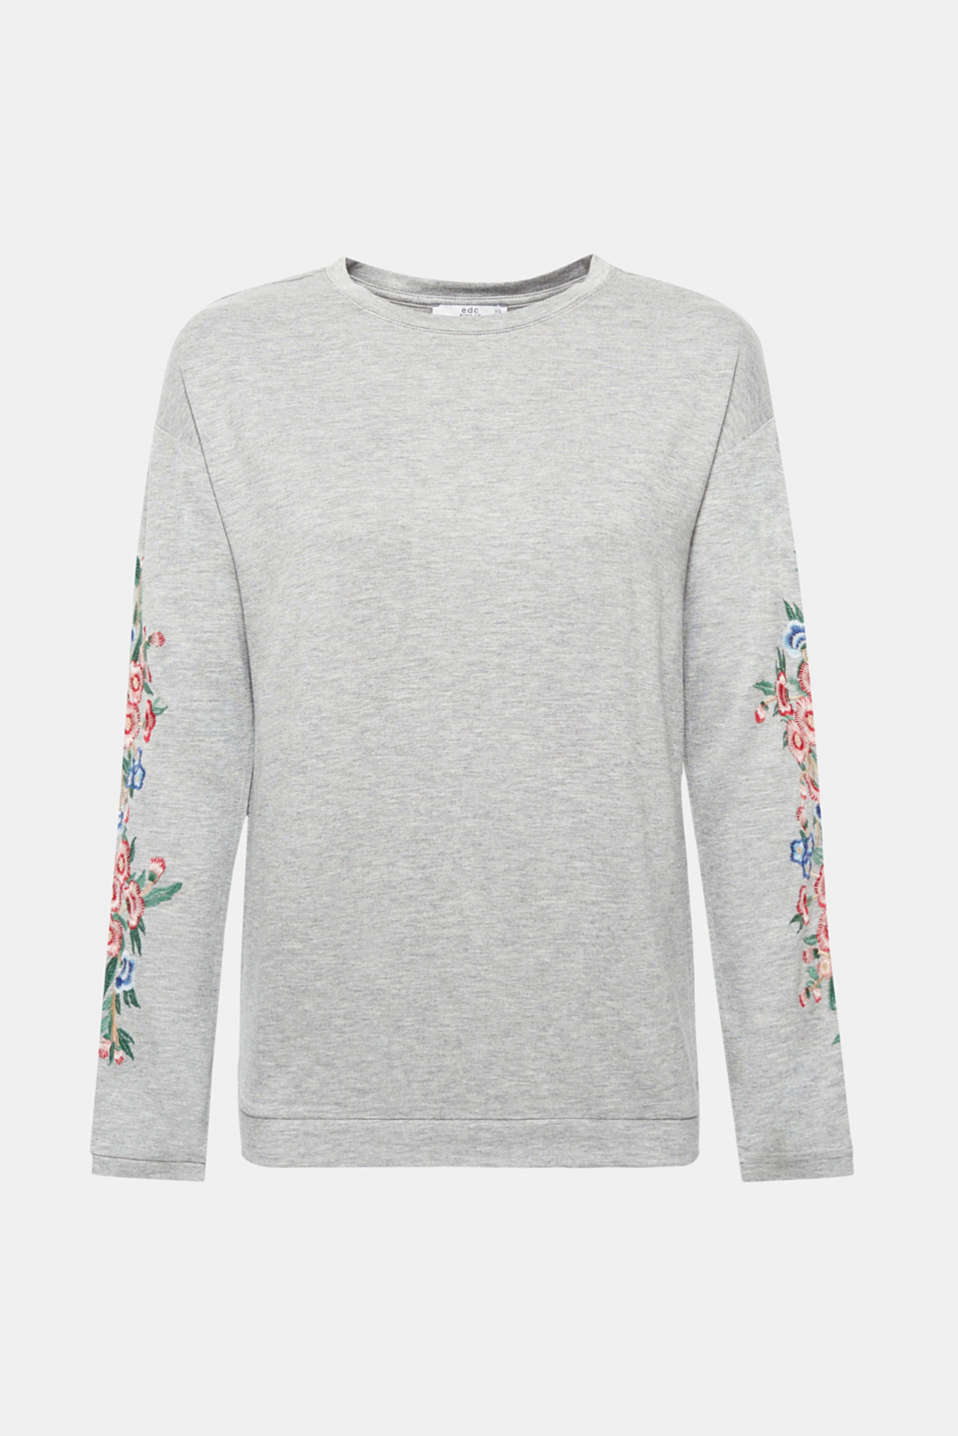 Casual folk style: The colourful floral embroidery on the sleeves gives this soft melange long sleeve top with added stretch for comfort its trendy look!